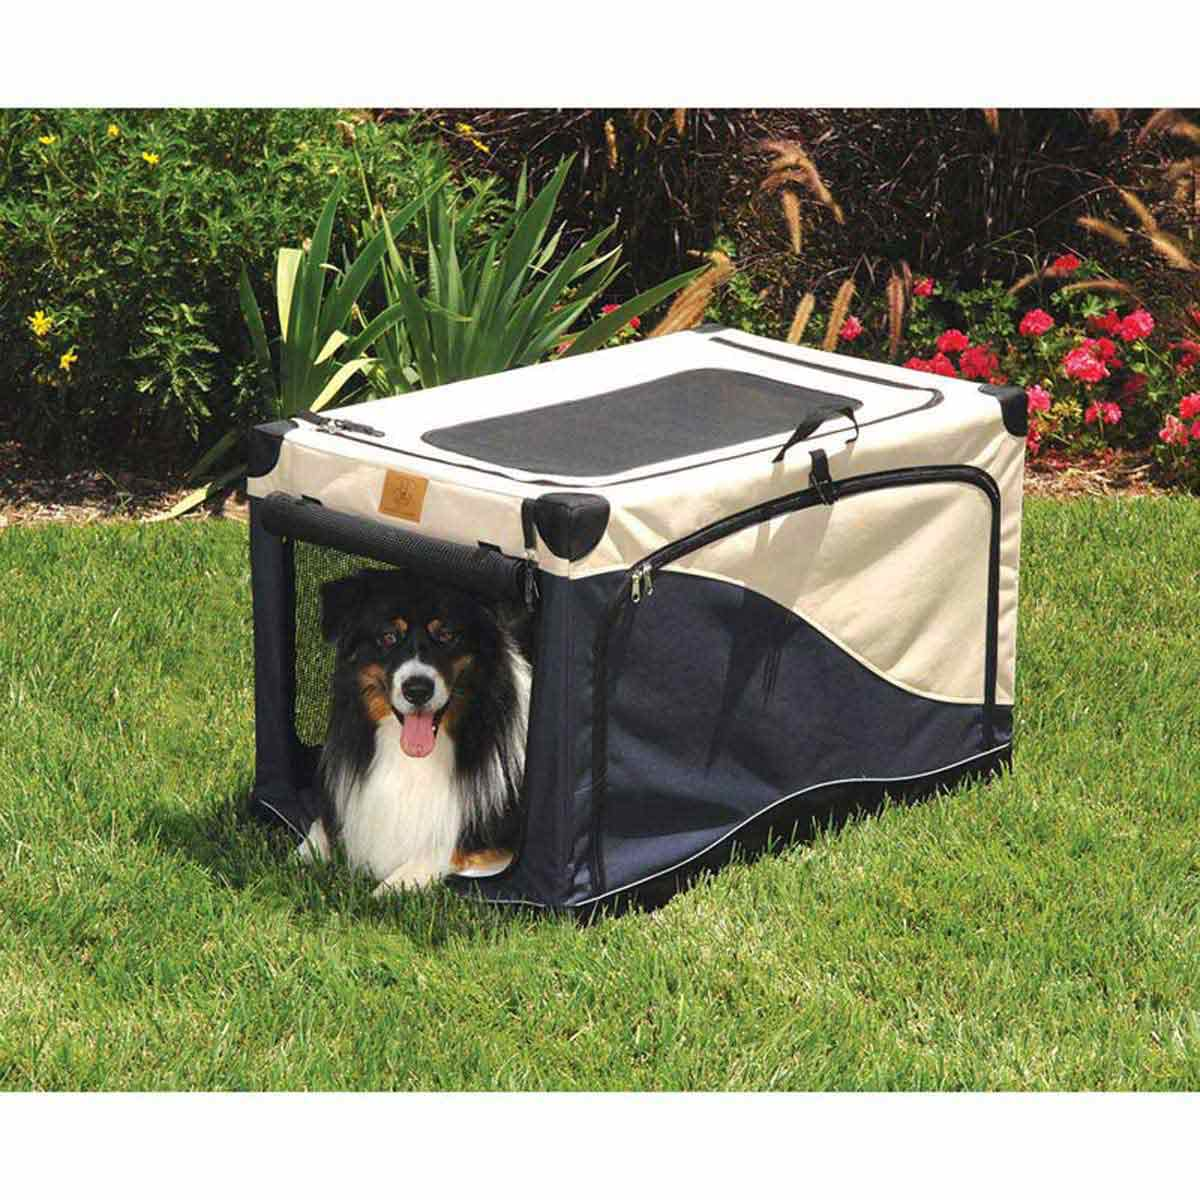 Precision Soft Side Crate for Cats and Dogs - 24 inches by 18 inches by 17 inches